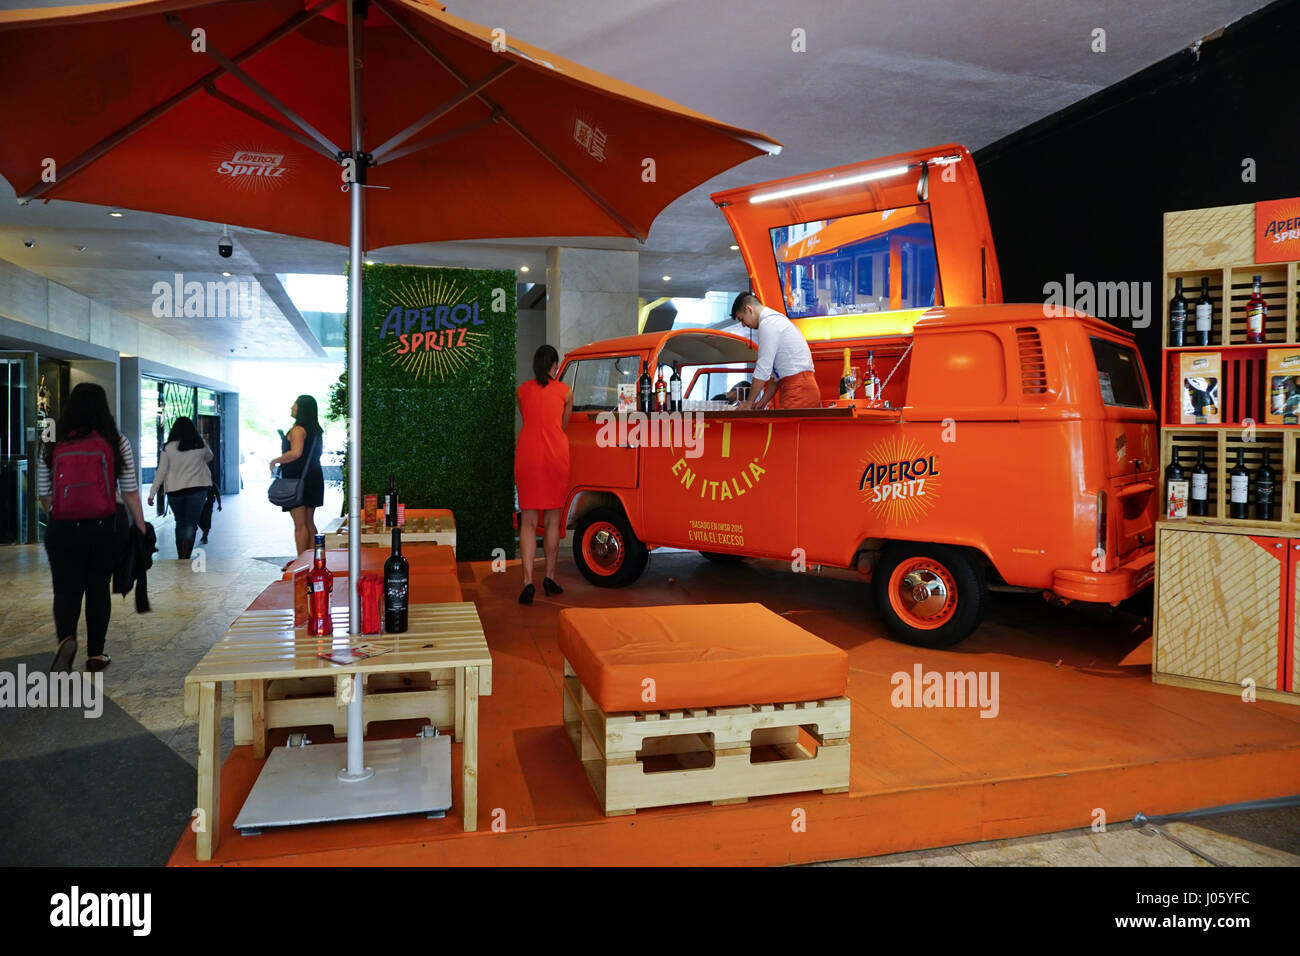 Antara Polanco shopping mall in the wealthy Polanco neighborhood of Mexico City, Mexico. Aperol stand in the mall. - Stock Image